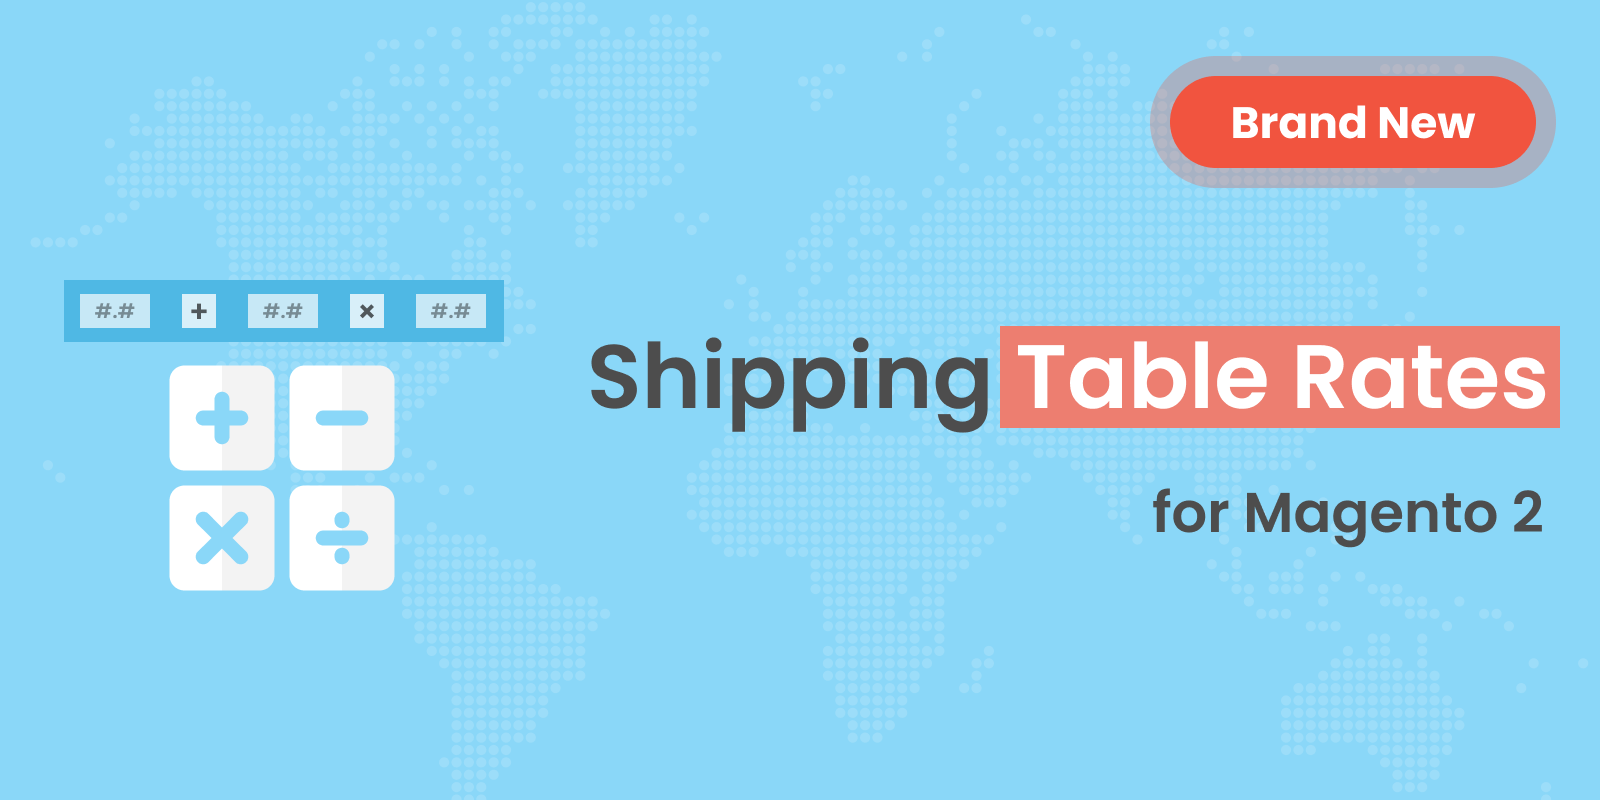 New Module: Magento 2 Shipping Table Rates